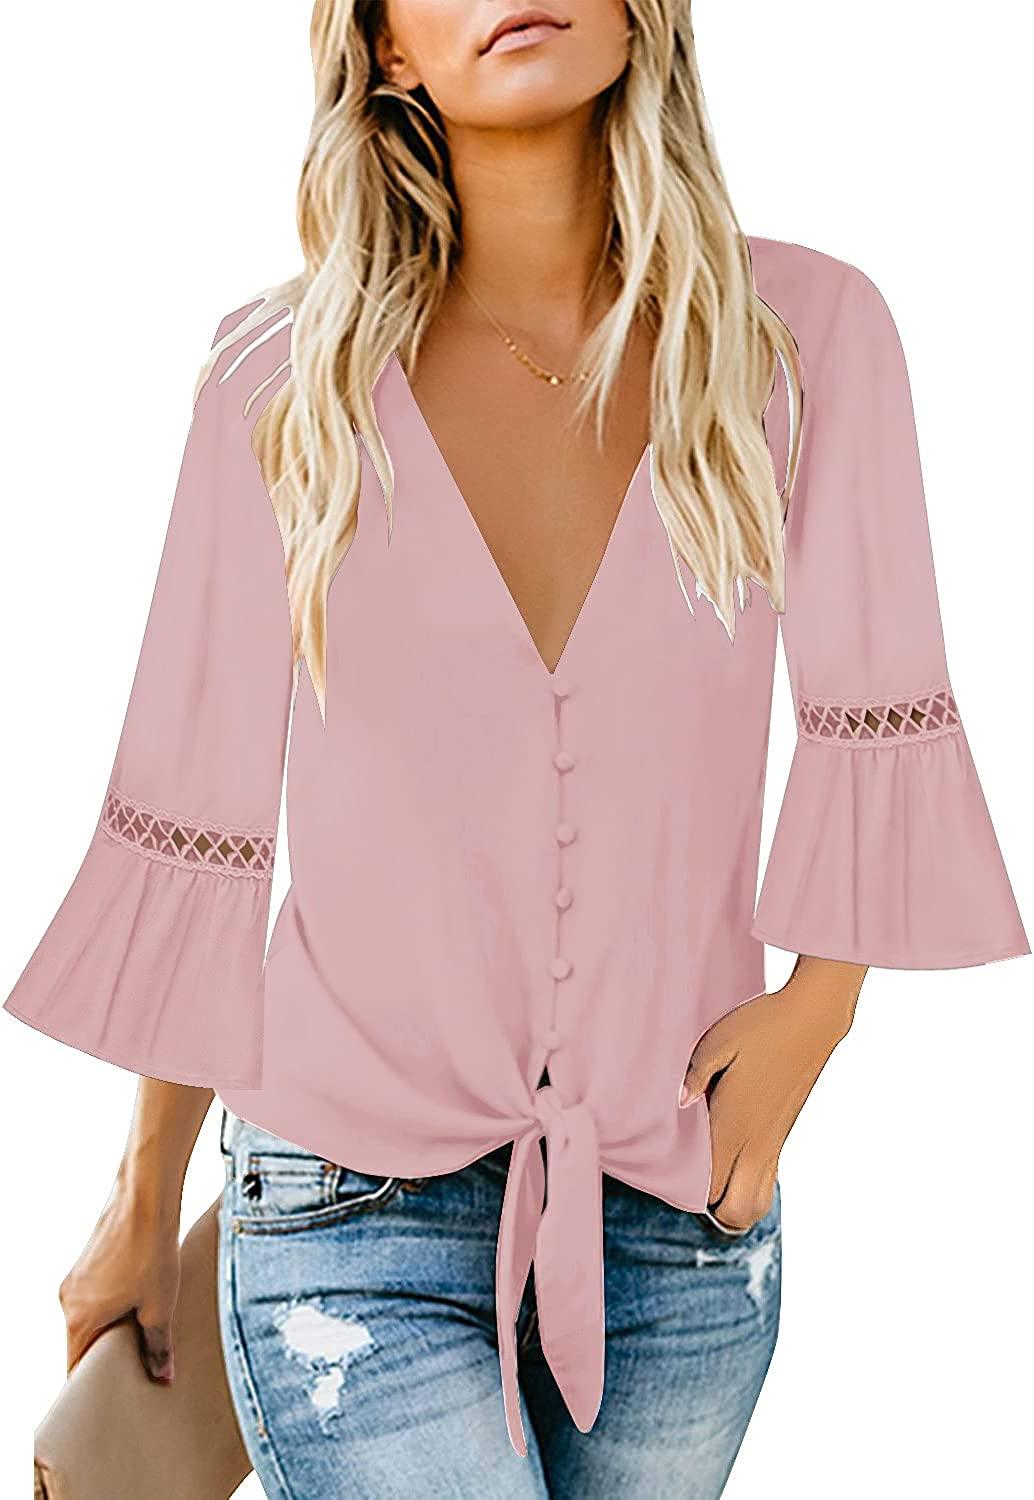 luvamia Women's V Neck Button Down Shirt Casual 3/4 Sleeve Tie Knot Tops Blouses